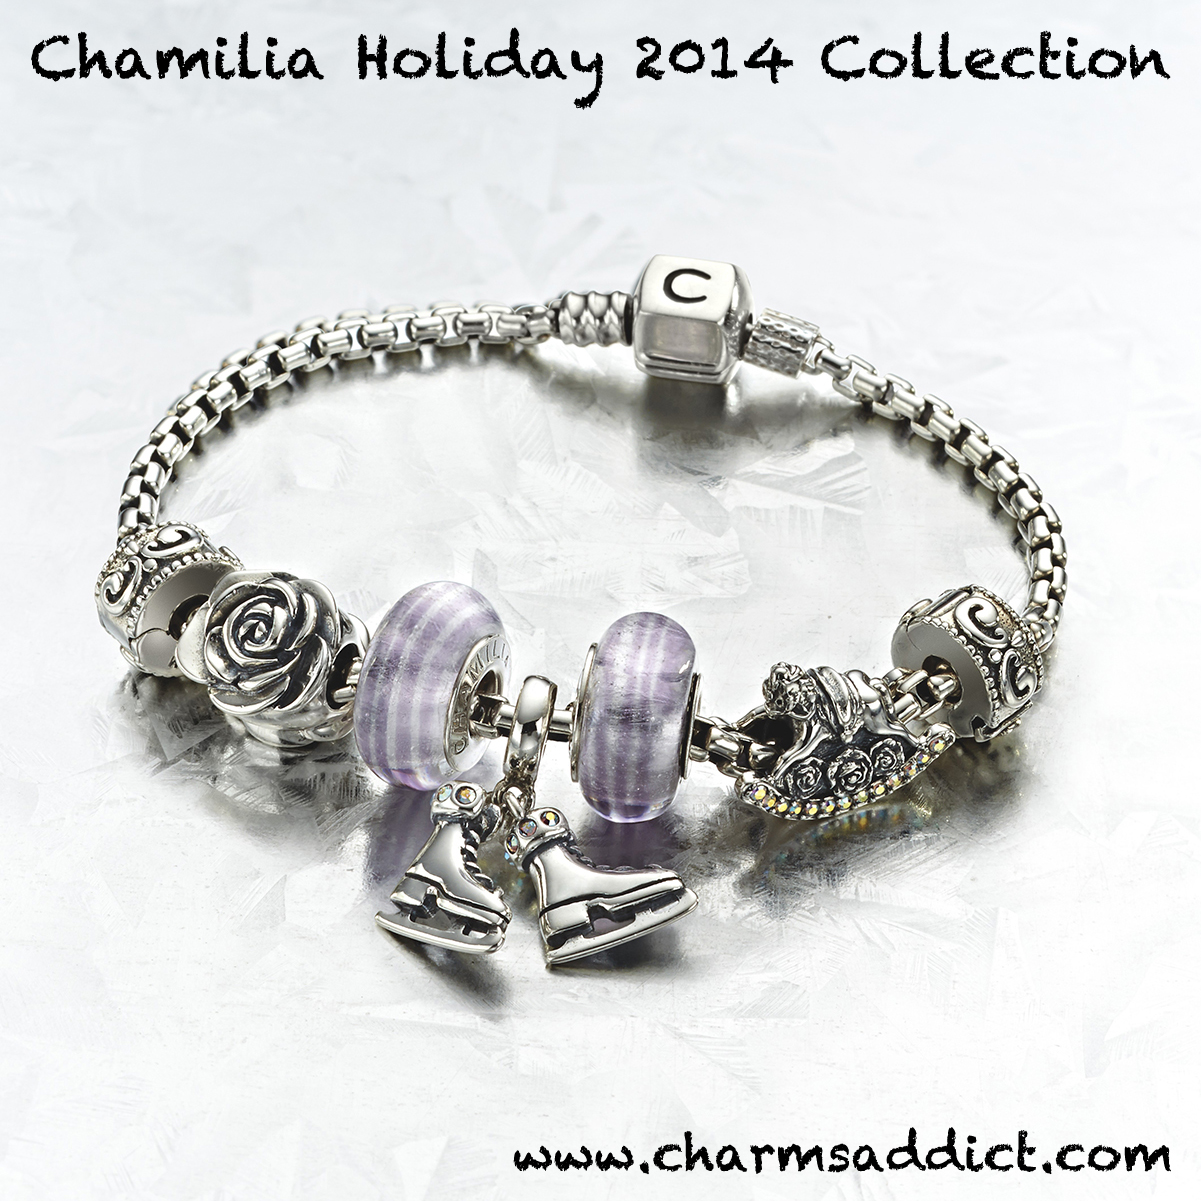 Chamilia Holiday 2014 Vintage Charms